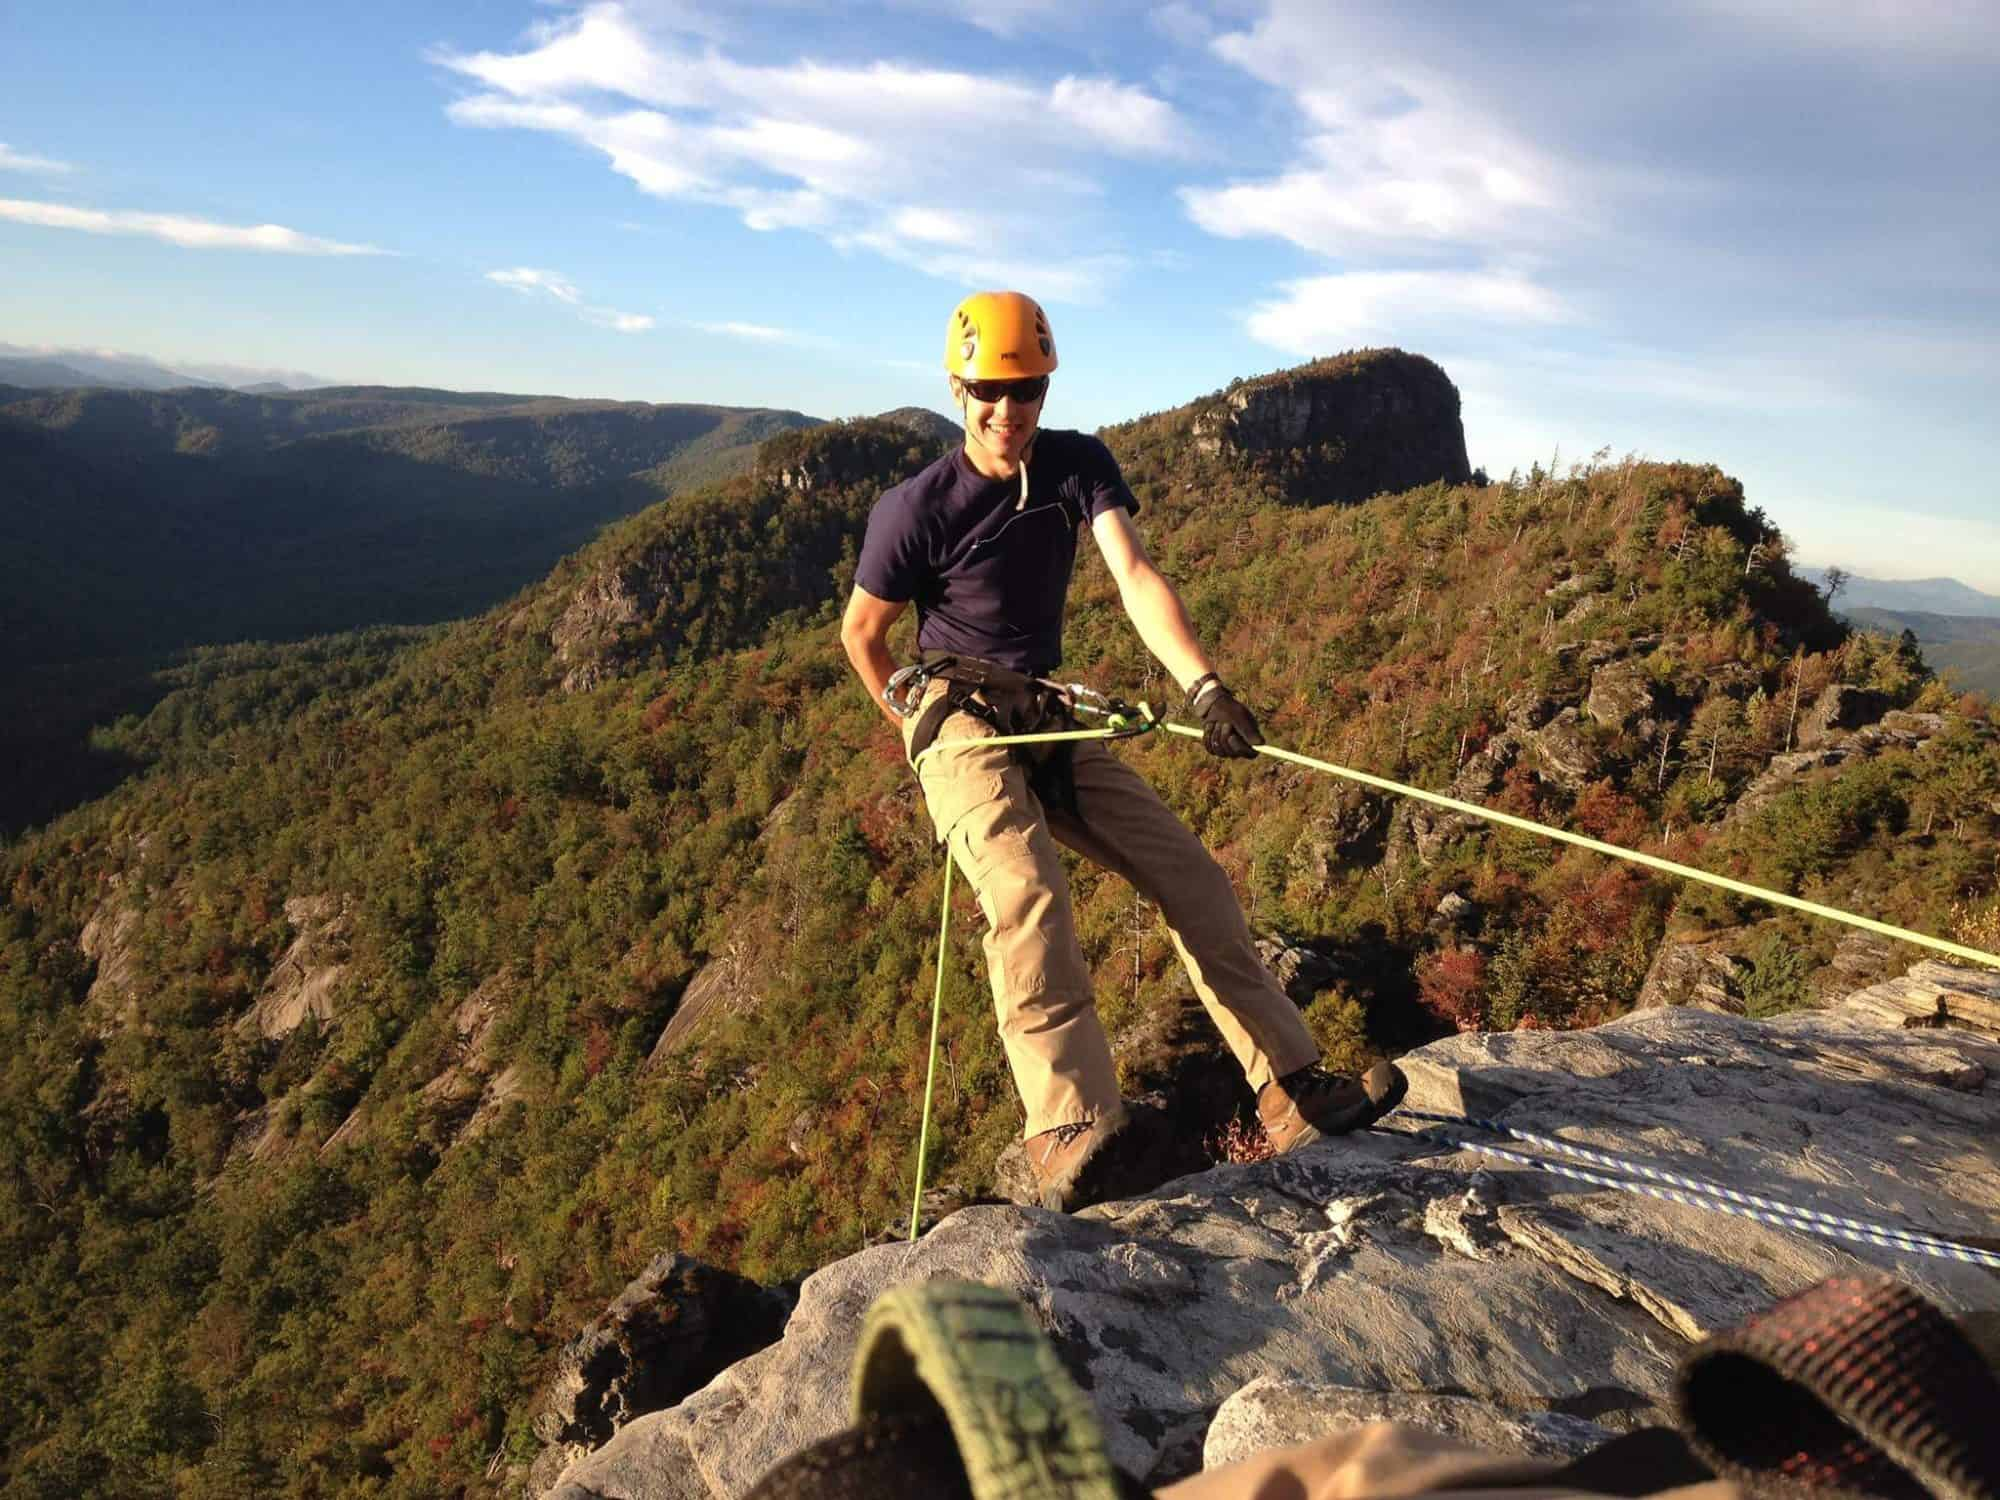 Grapefruit Seed Extract: Broad-Spectrum Anti-Microbial For MRSA, UTIs,Thrust & Candida. Our son rappelling over a cliff.